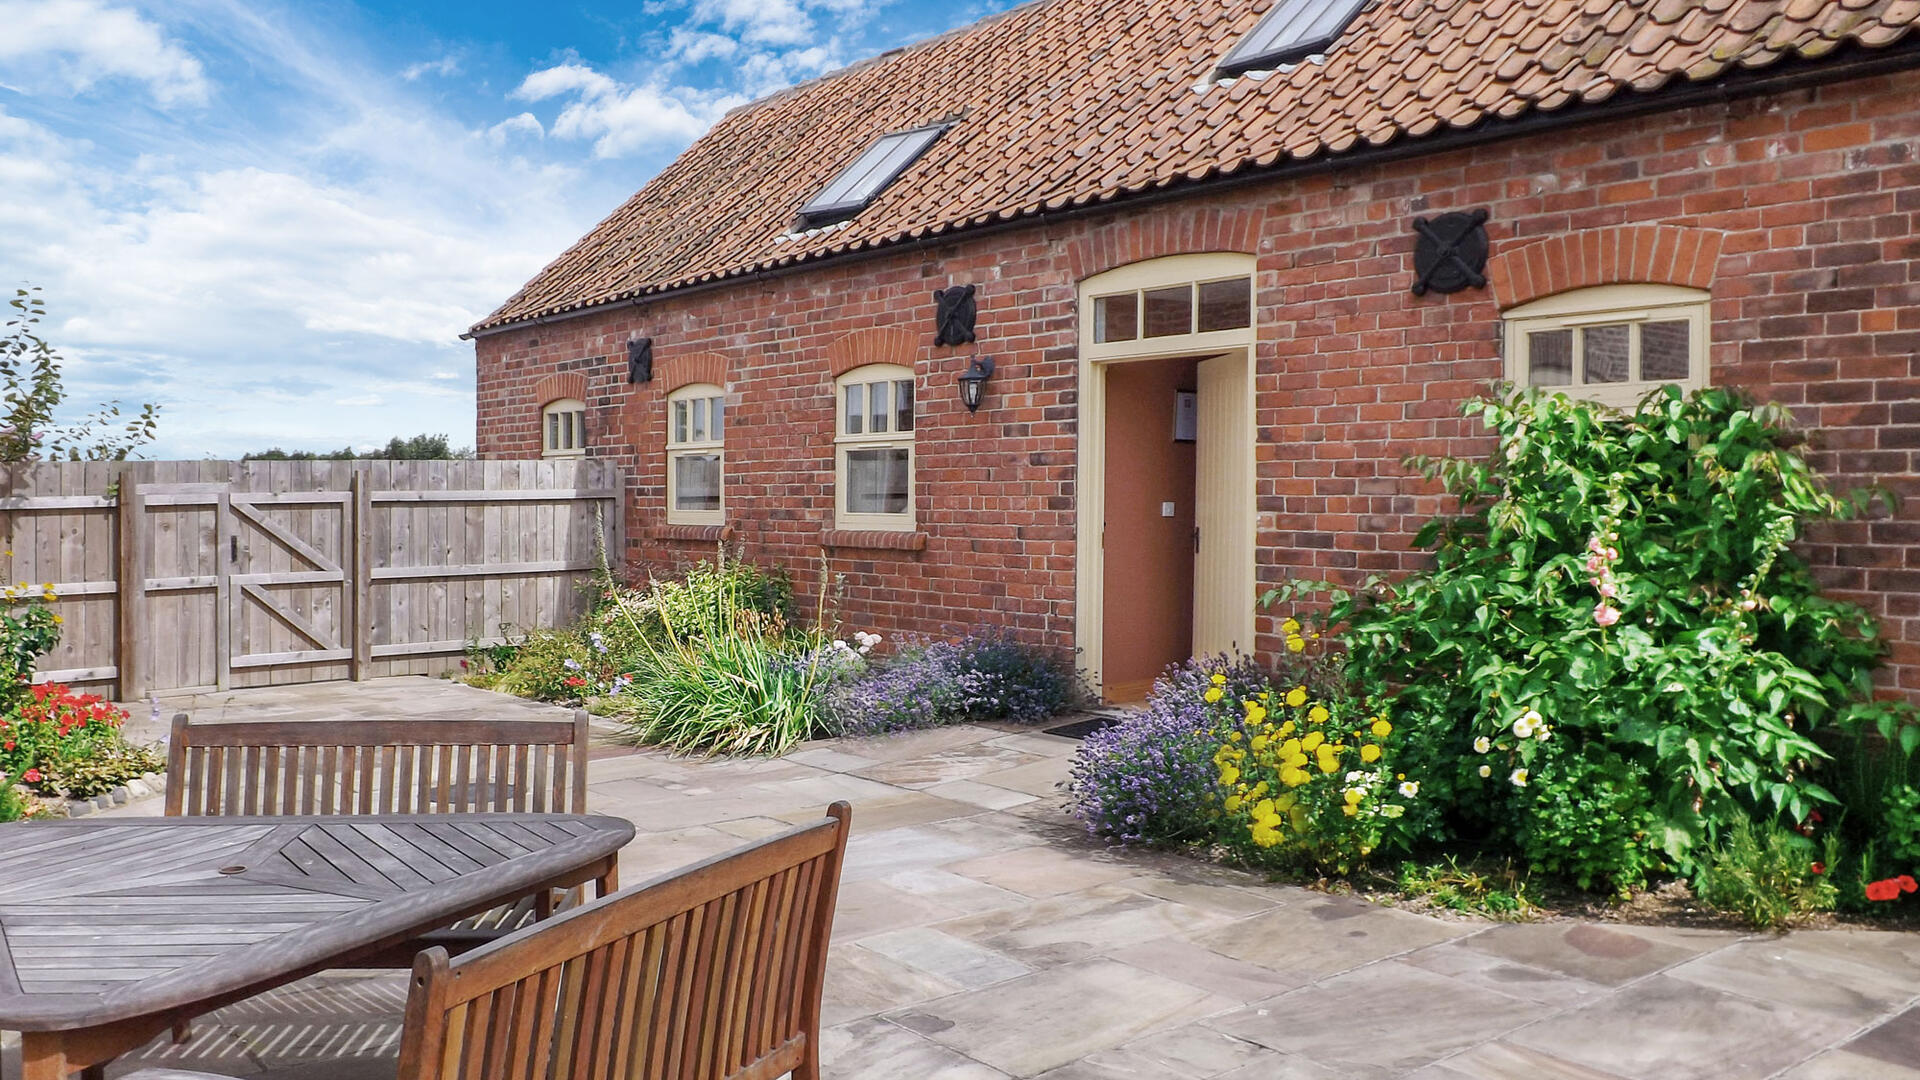 2 Bedroom Cottage/shared grounds in Yorkshire, United Kingdom